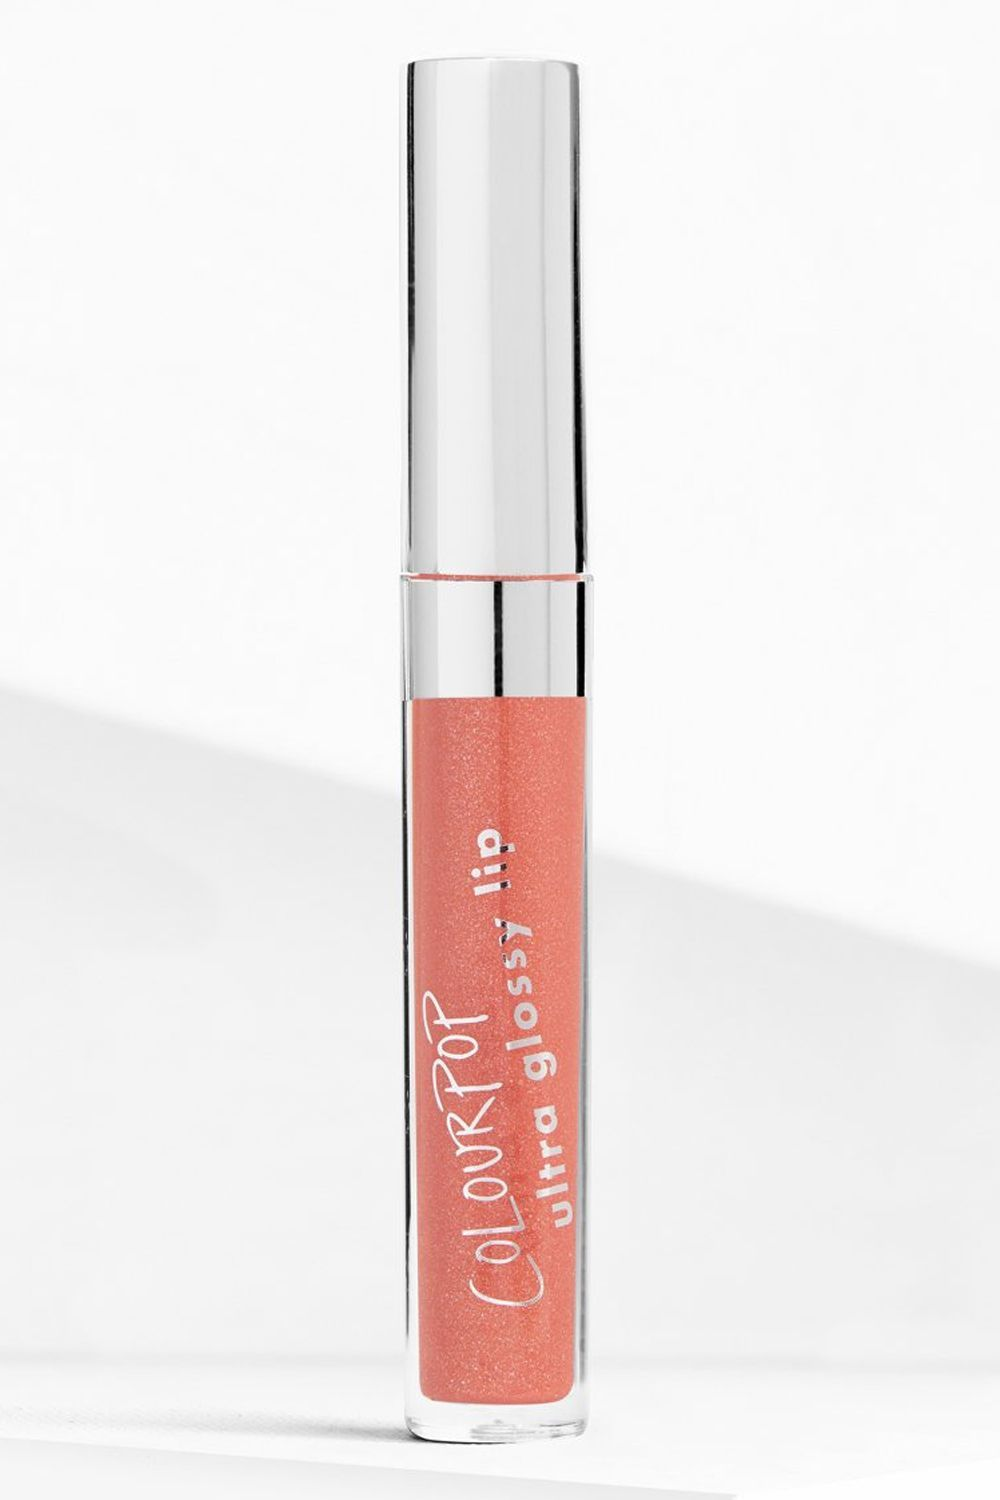 Communication on this topic: Best Lip Gloss Brands – Our Top , best-lip-gloss-brands-our-top/